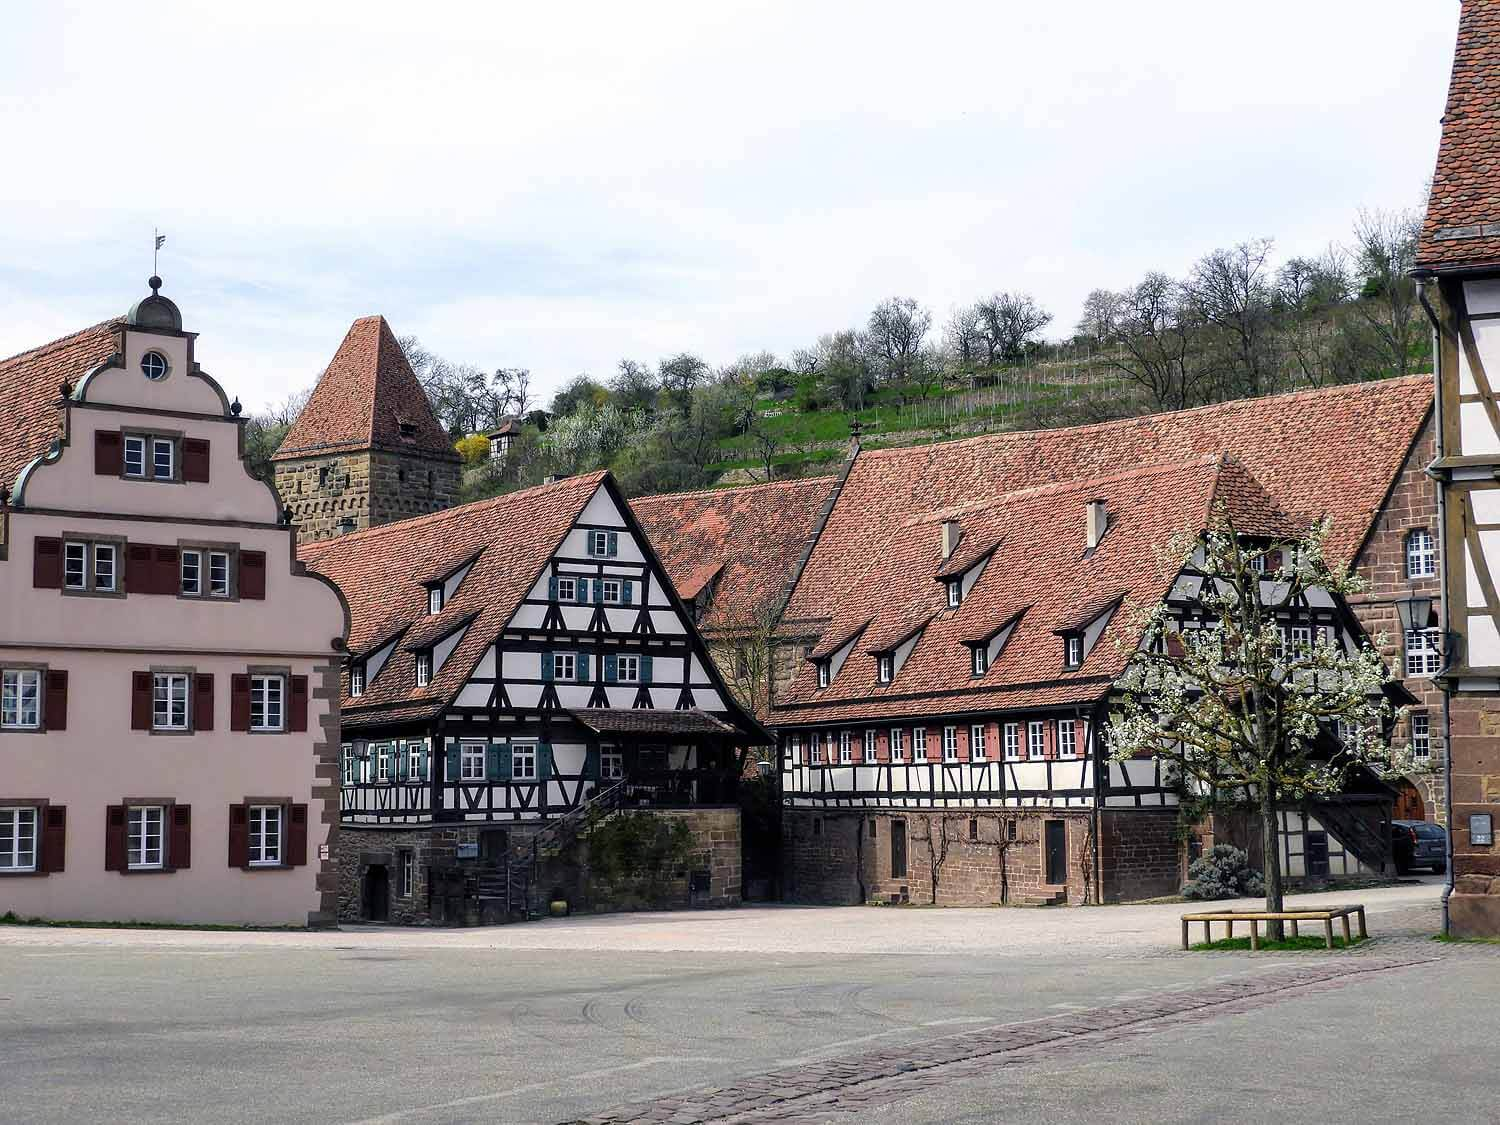 germany-kloster-maulbronn -old-town-square.jpg